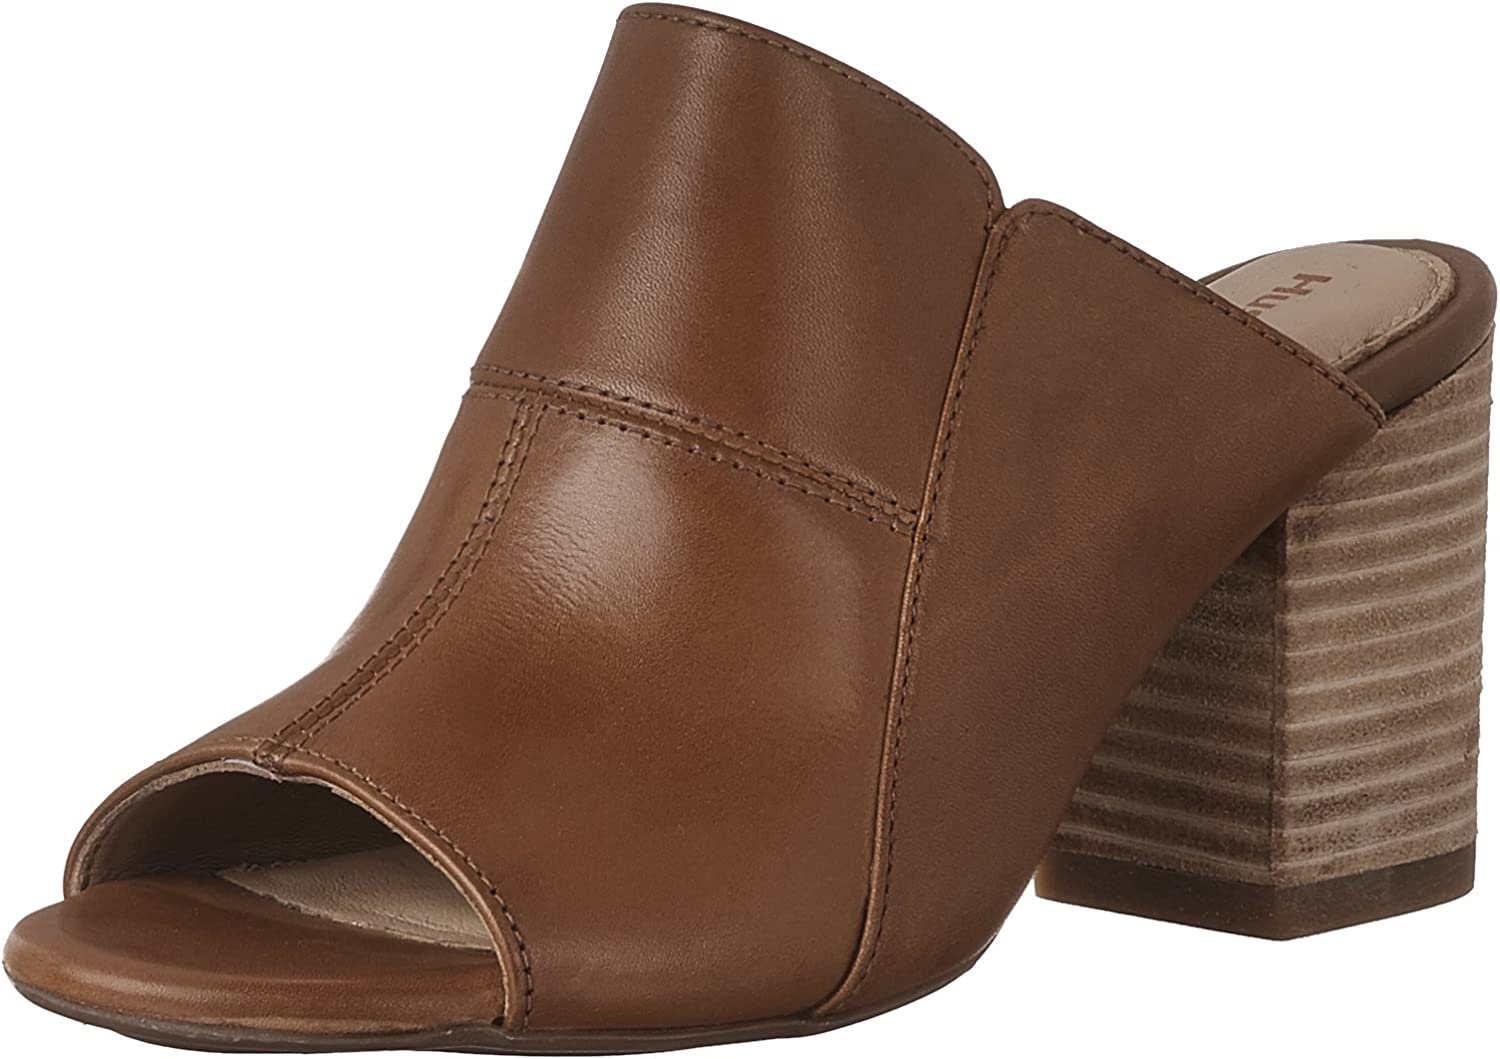 Hush Puppies Women's Sayer Malia Mules